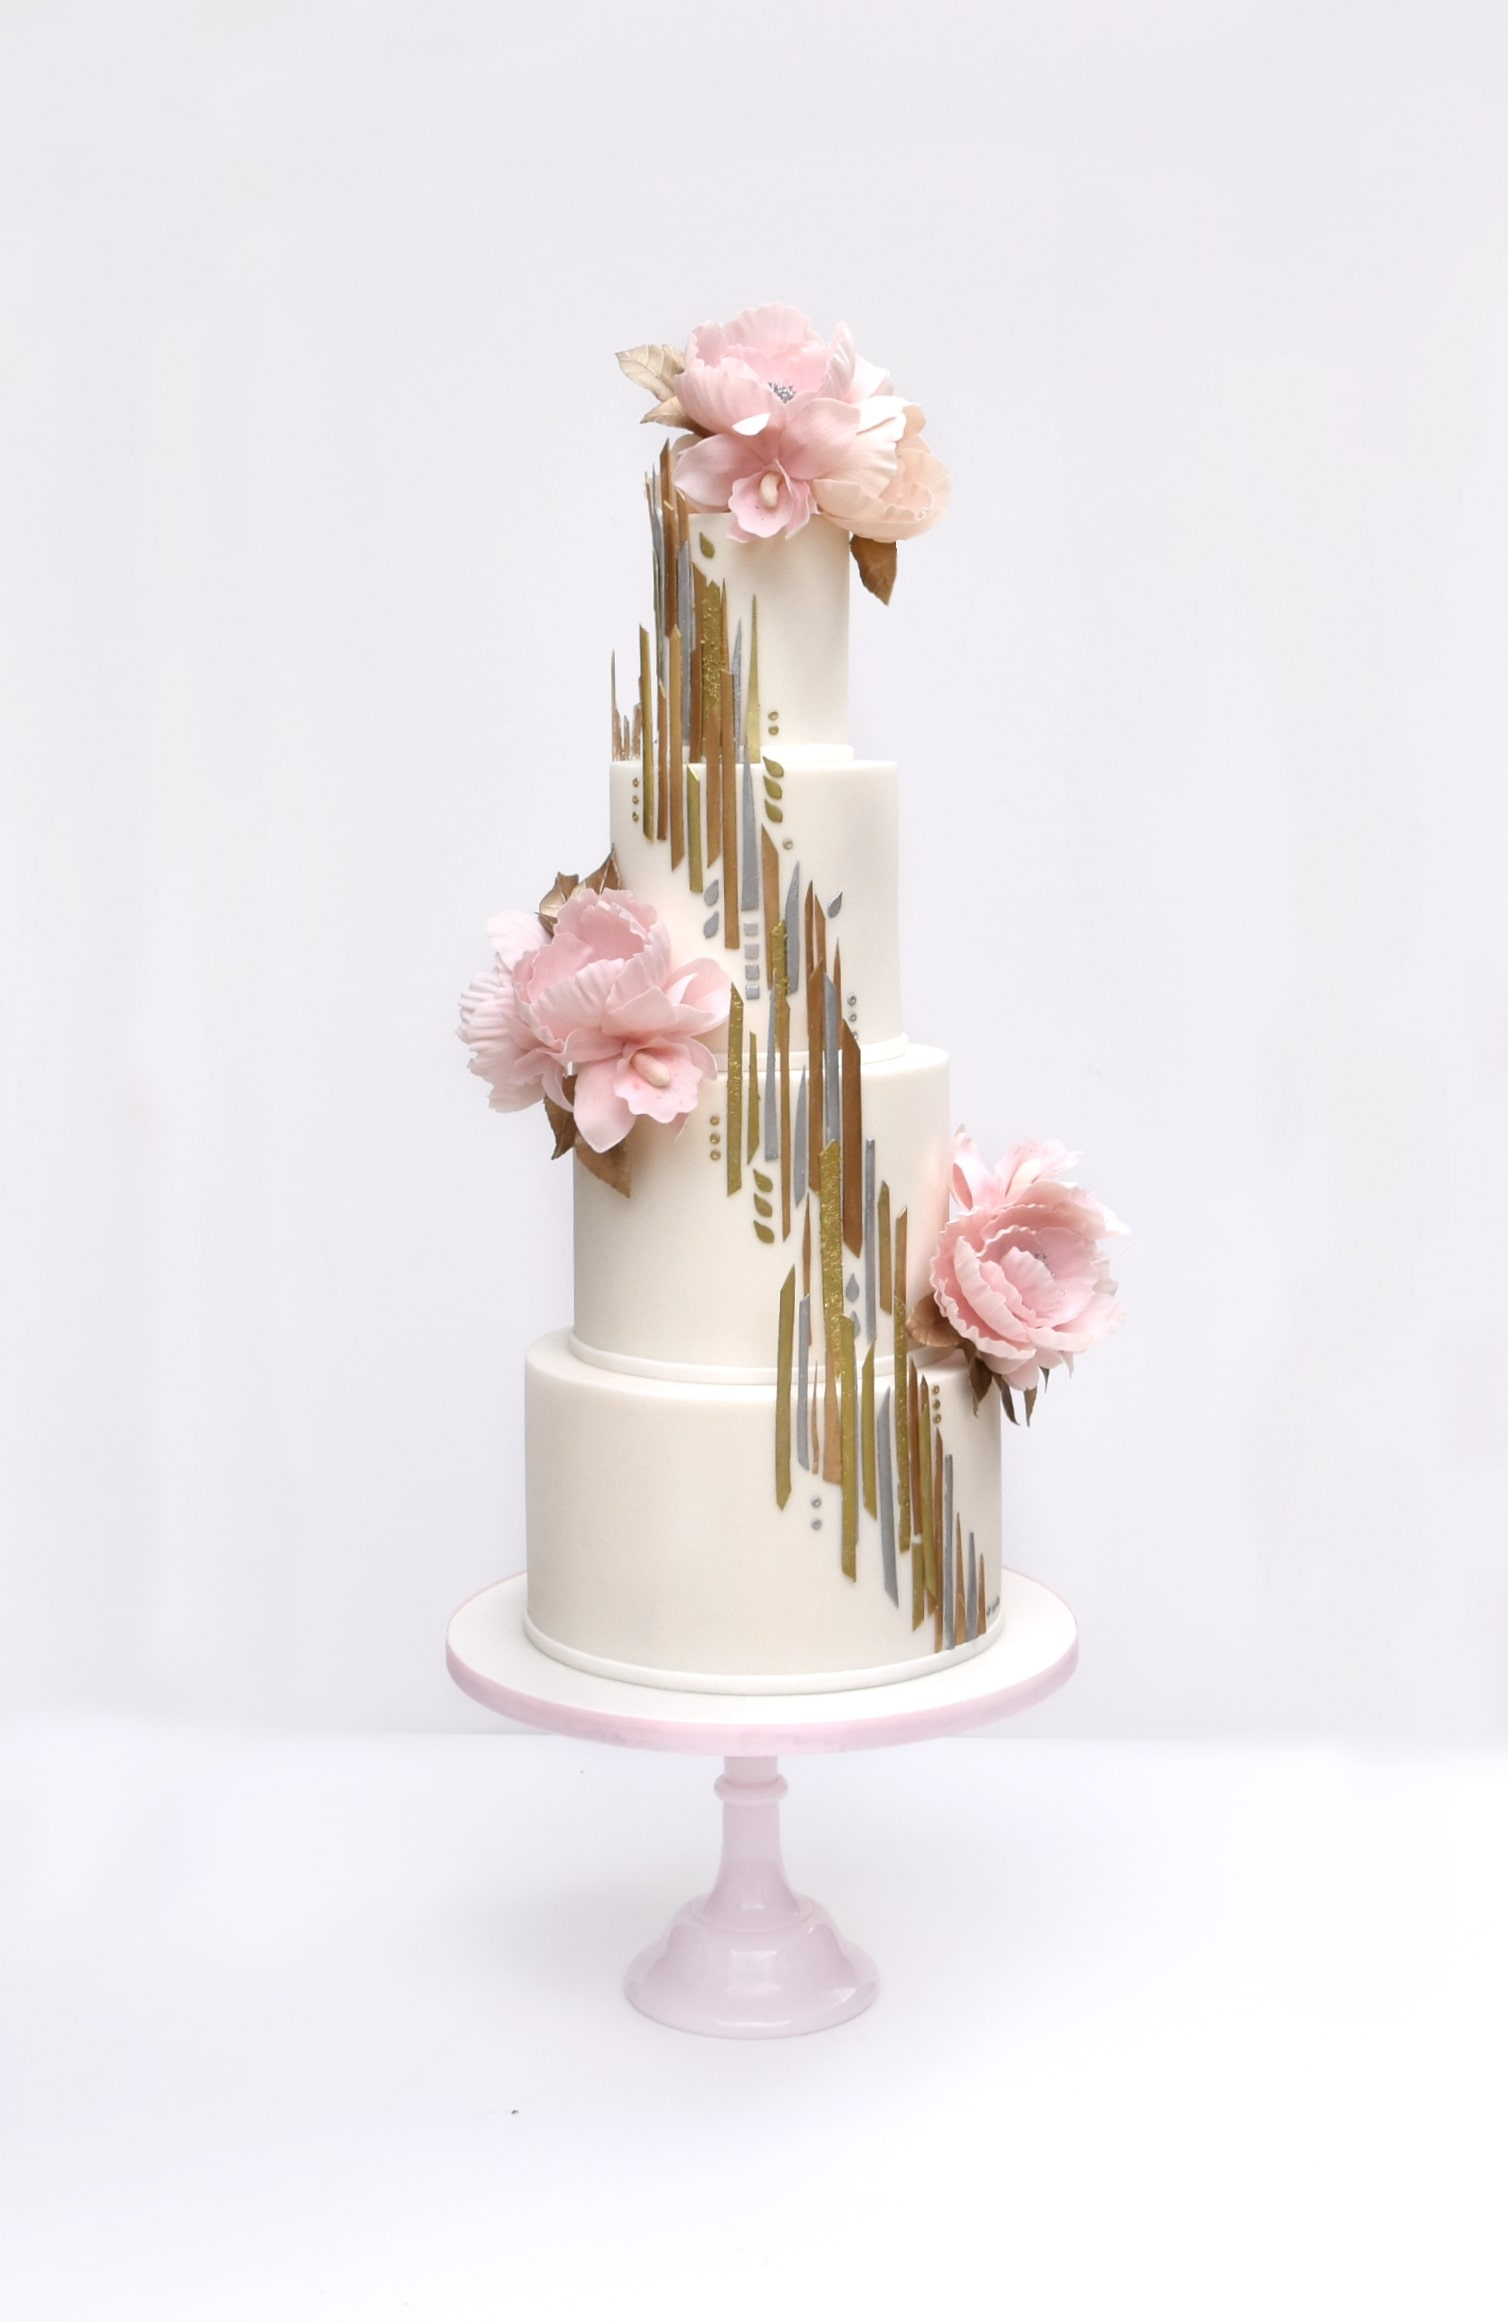 Showstopping Award winning wedding cake design with metallic gold detail and sugar flowers by Meadowsweet Cakes